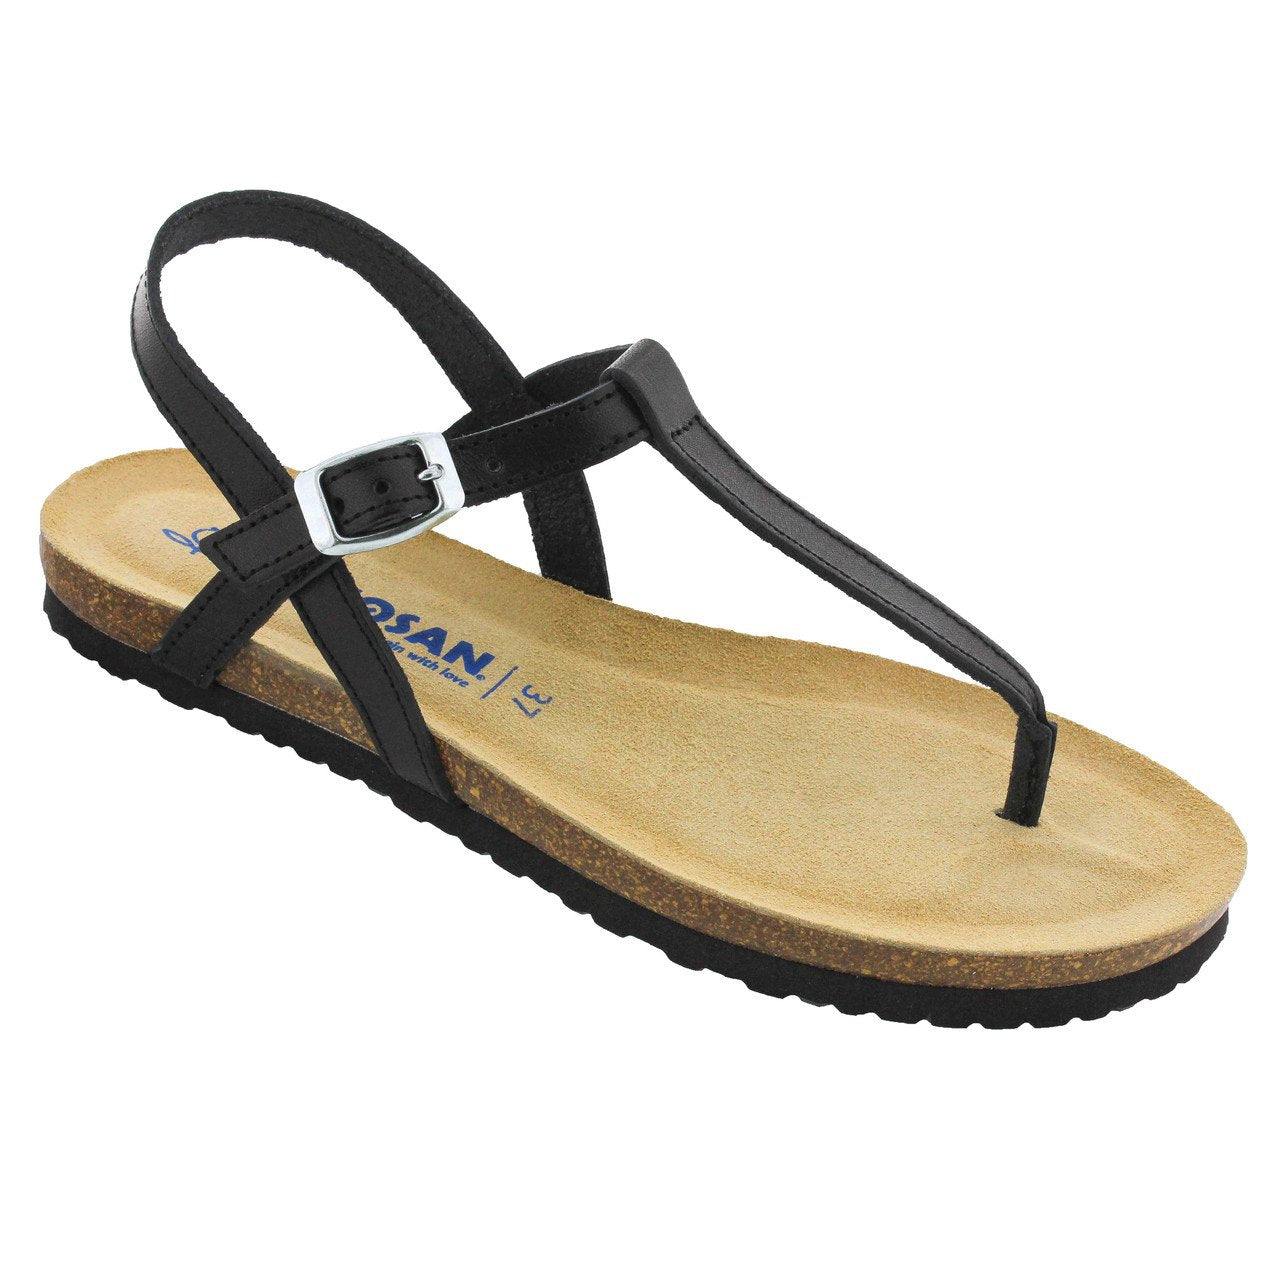 a02f30f6e4 Sandy Thong in Nappa Leather - Classic Comfort – Sanosan Footwear